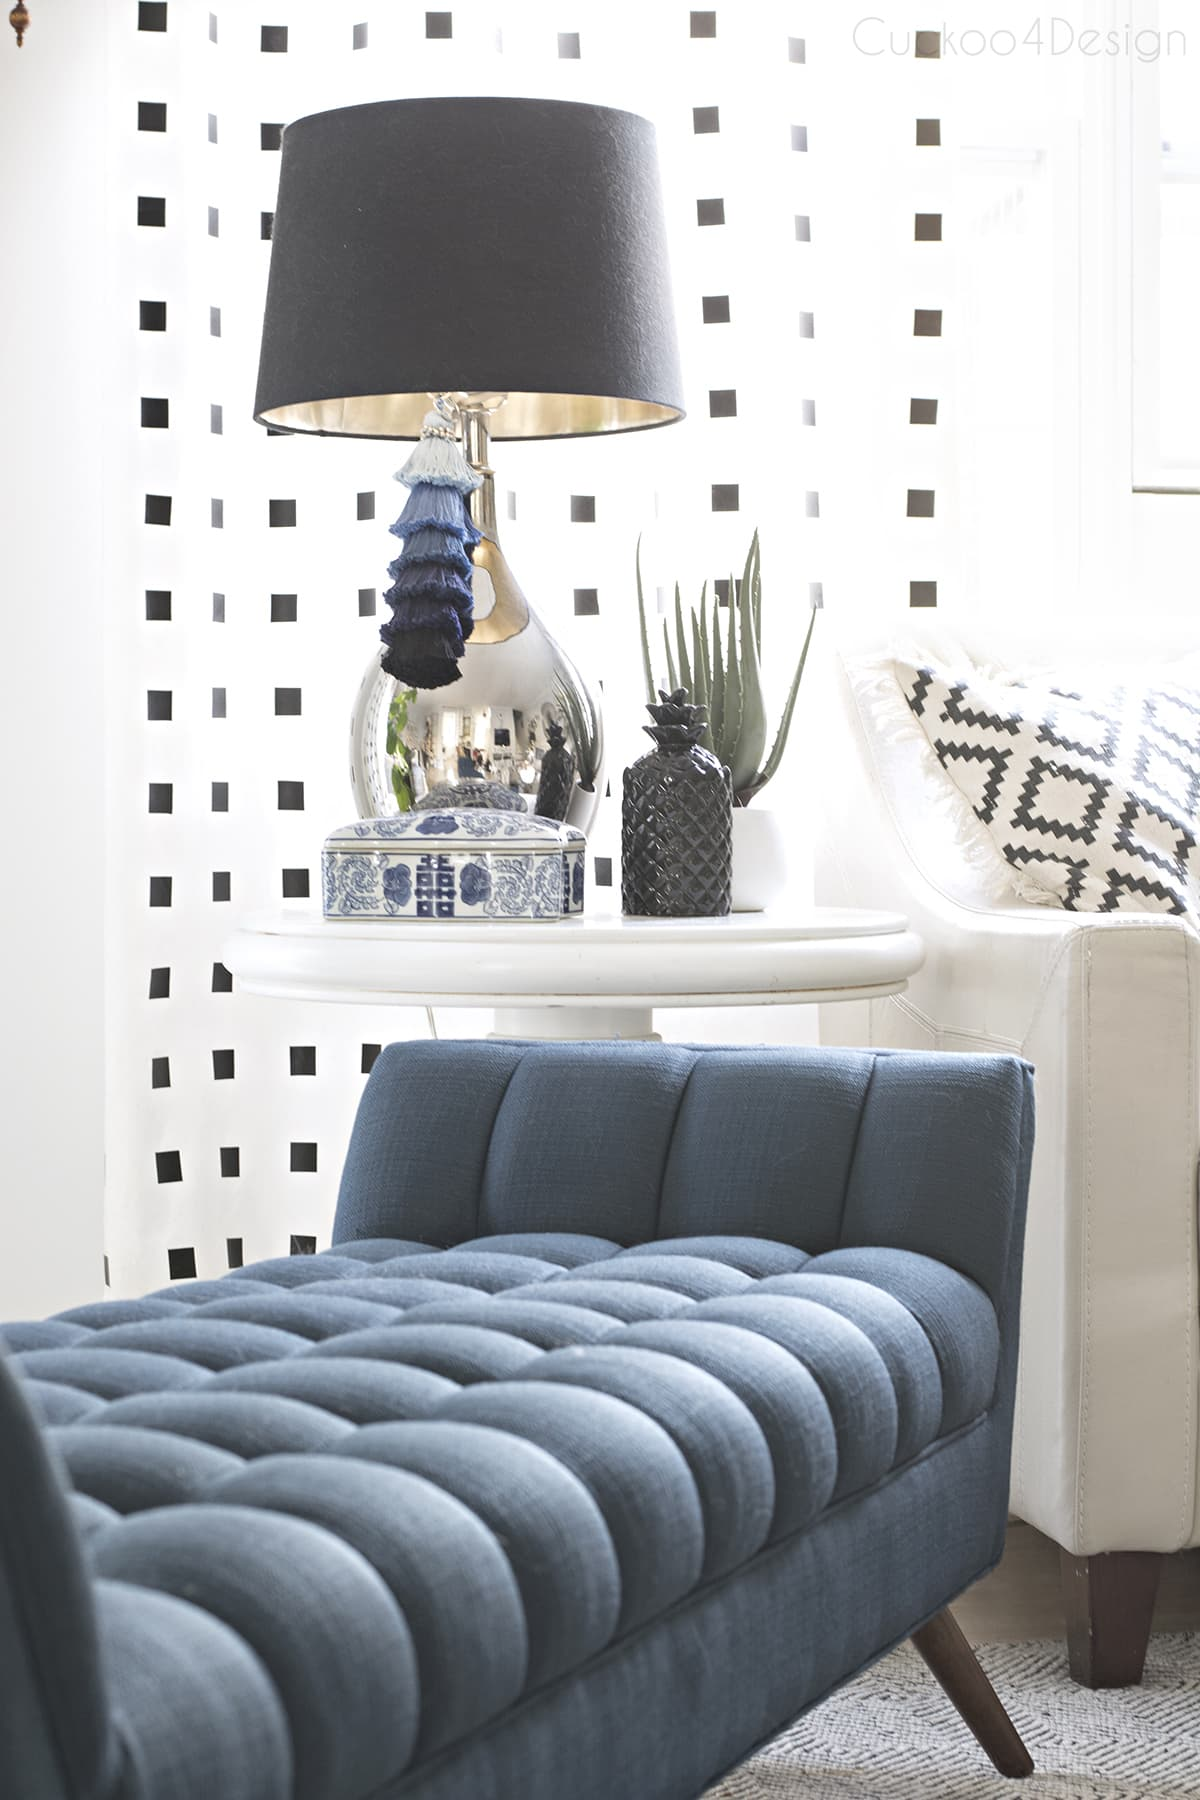 blue button tufted chaise in living room  with black and white accents | Modway Response Mid-Century Modern Bench Large Upholstered Fabric in Azure |